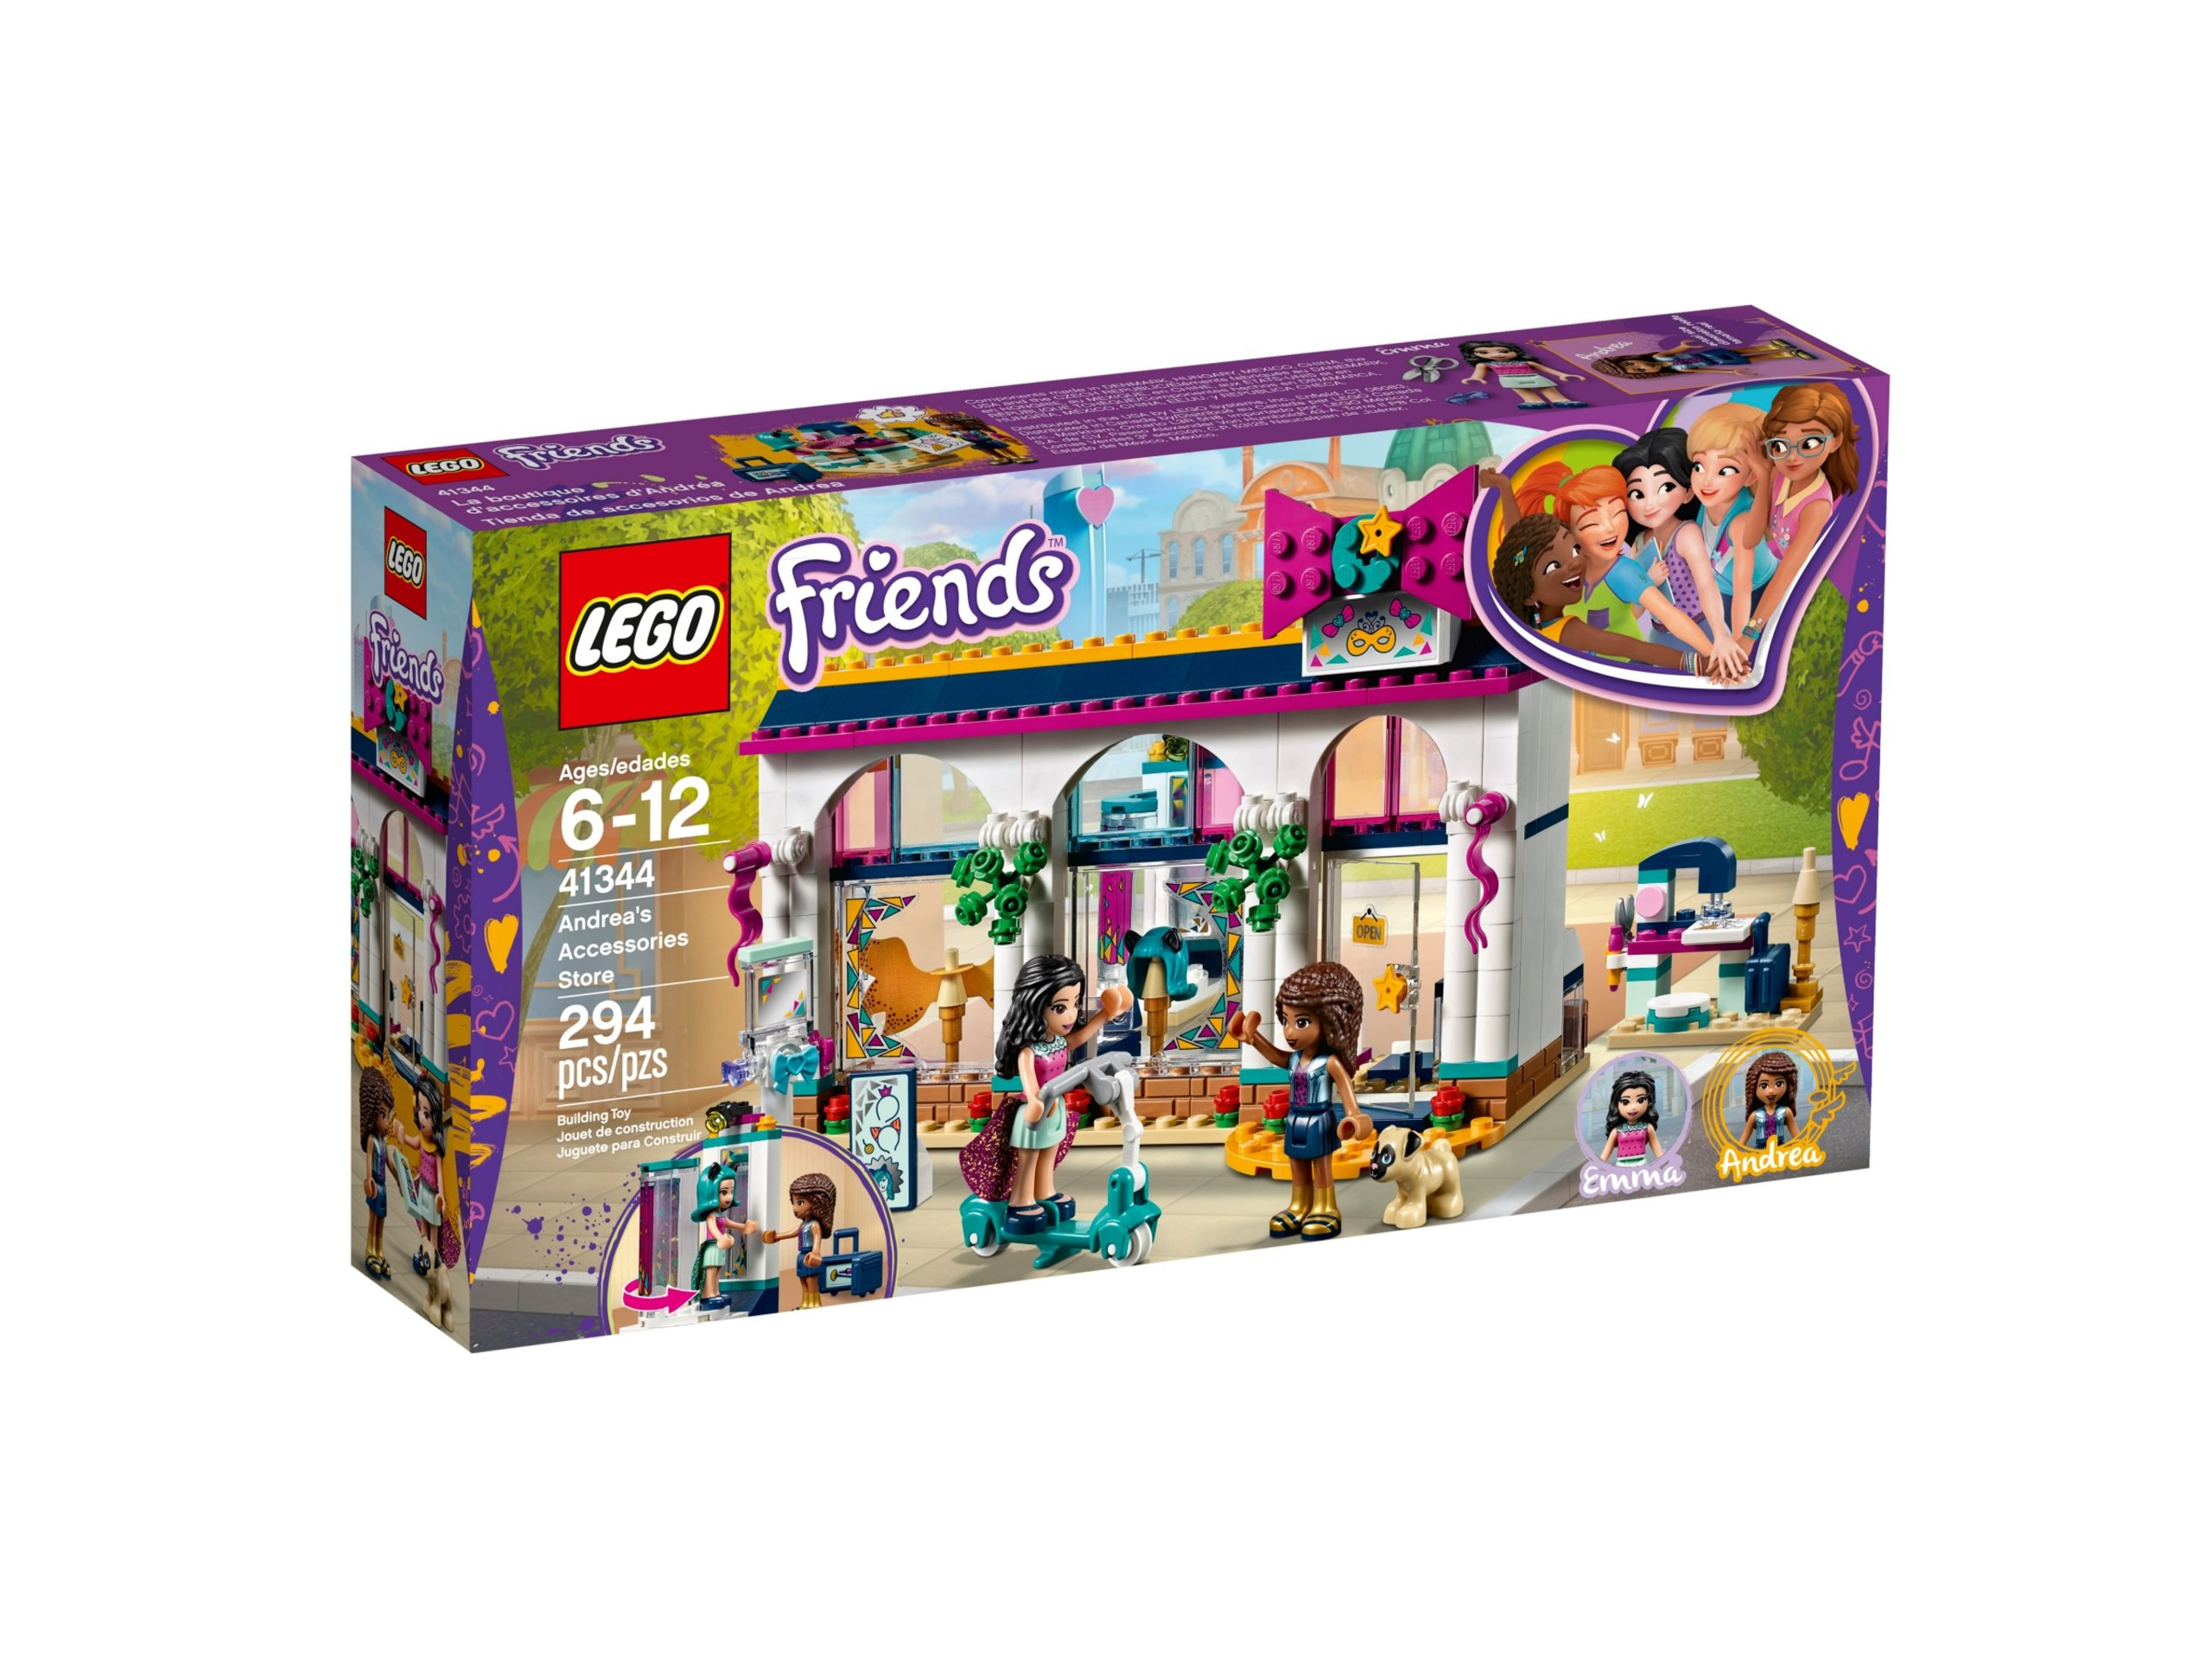 lego 41344 andreas accessoire laden scaled